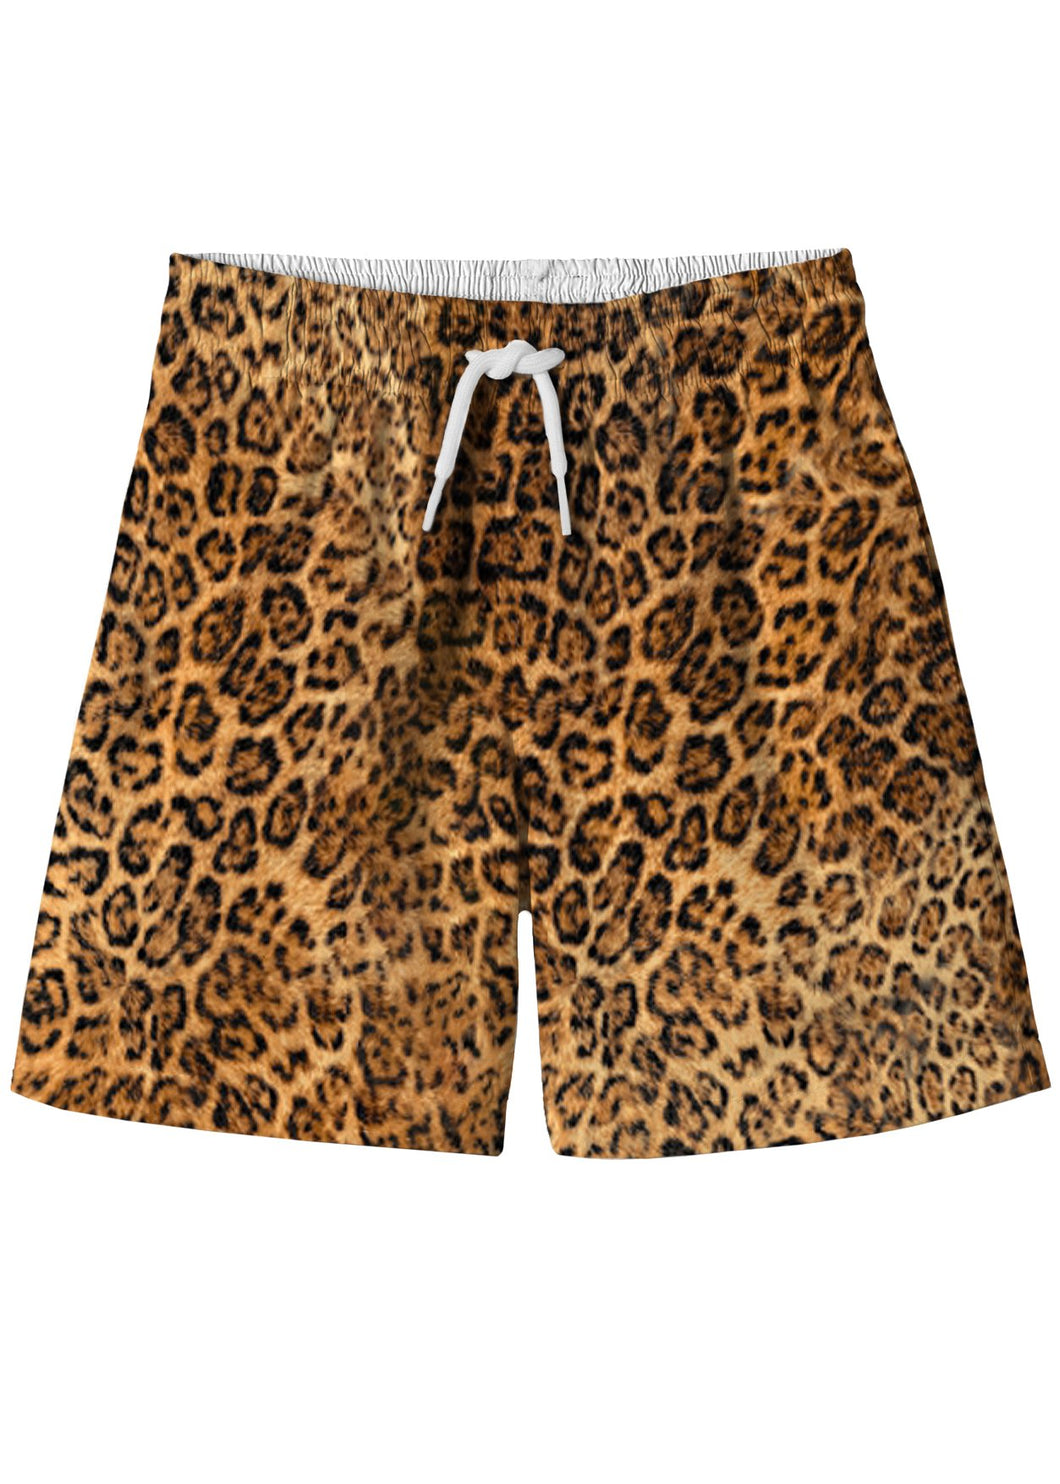 Cheetah Board Shorts